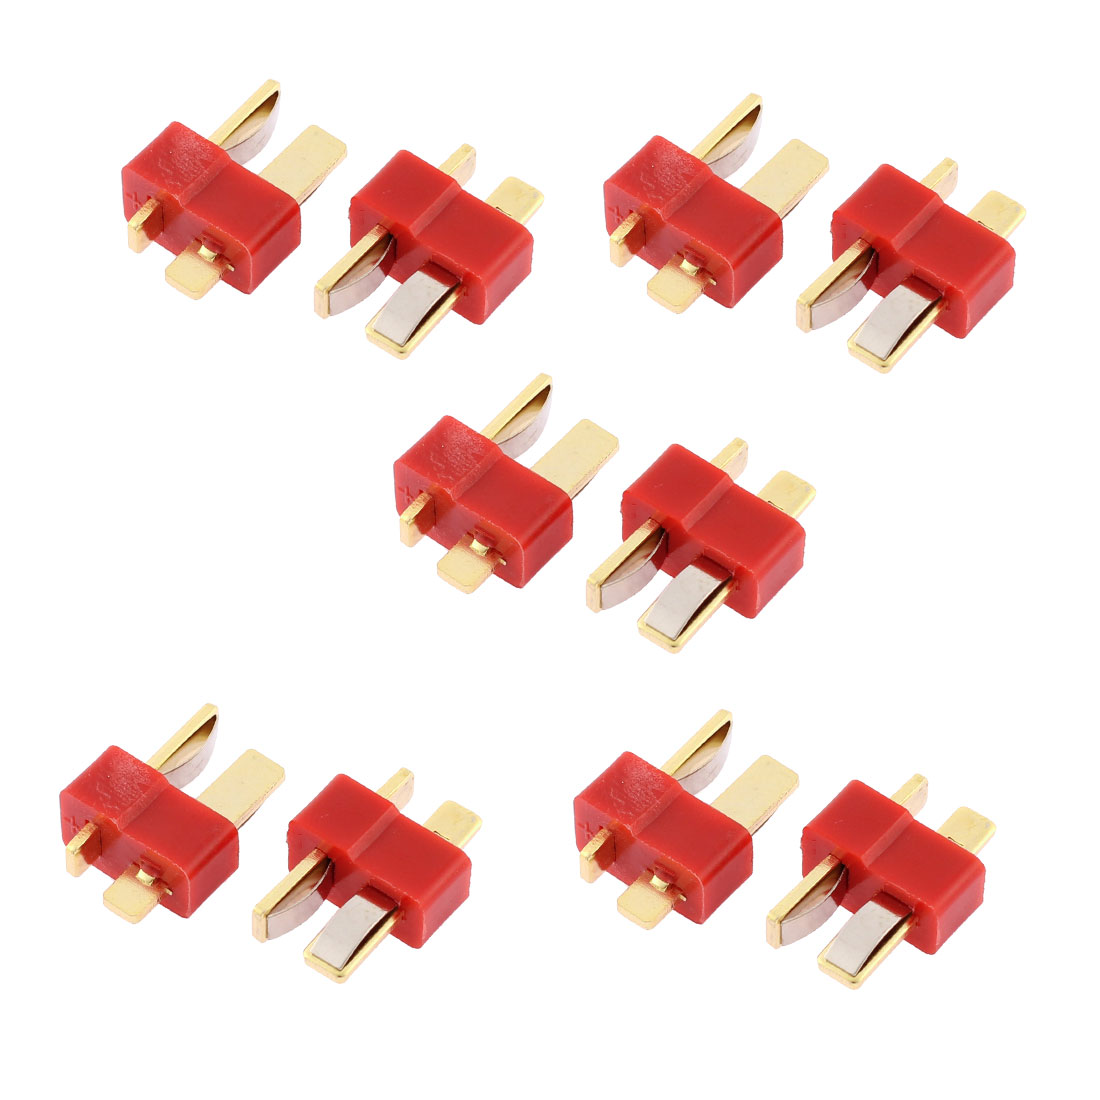 10 Pcs T Male Connectors for RC Airplane Aircraft LiPo Battery ESC